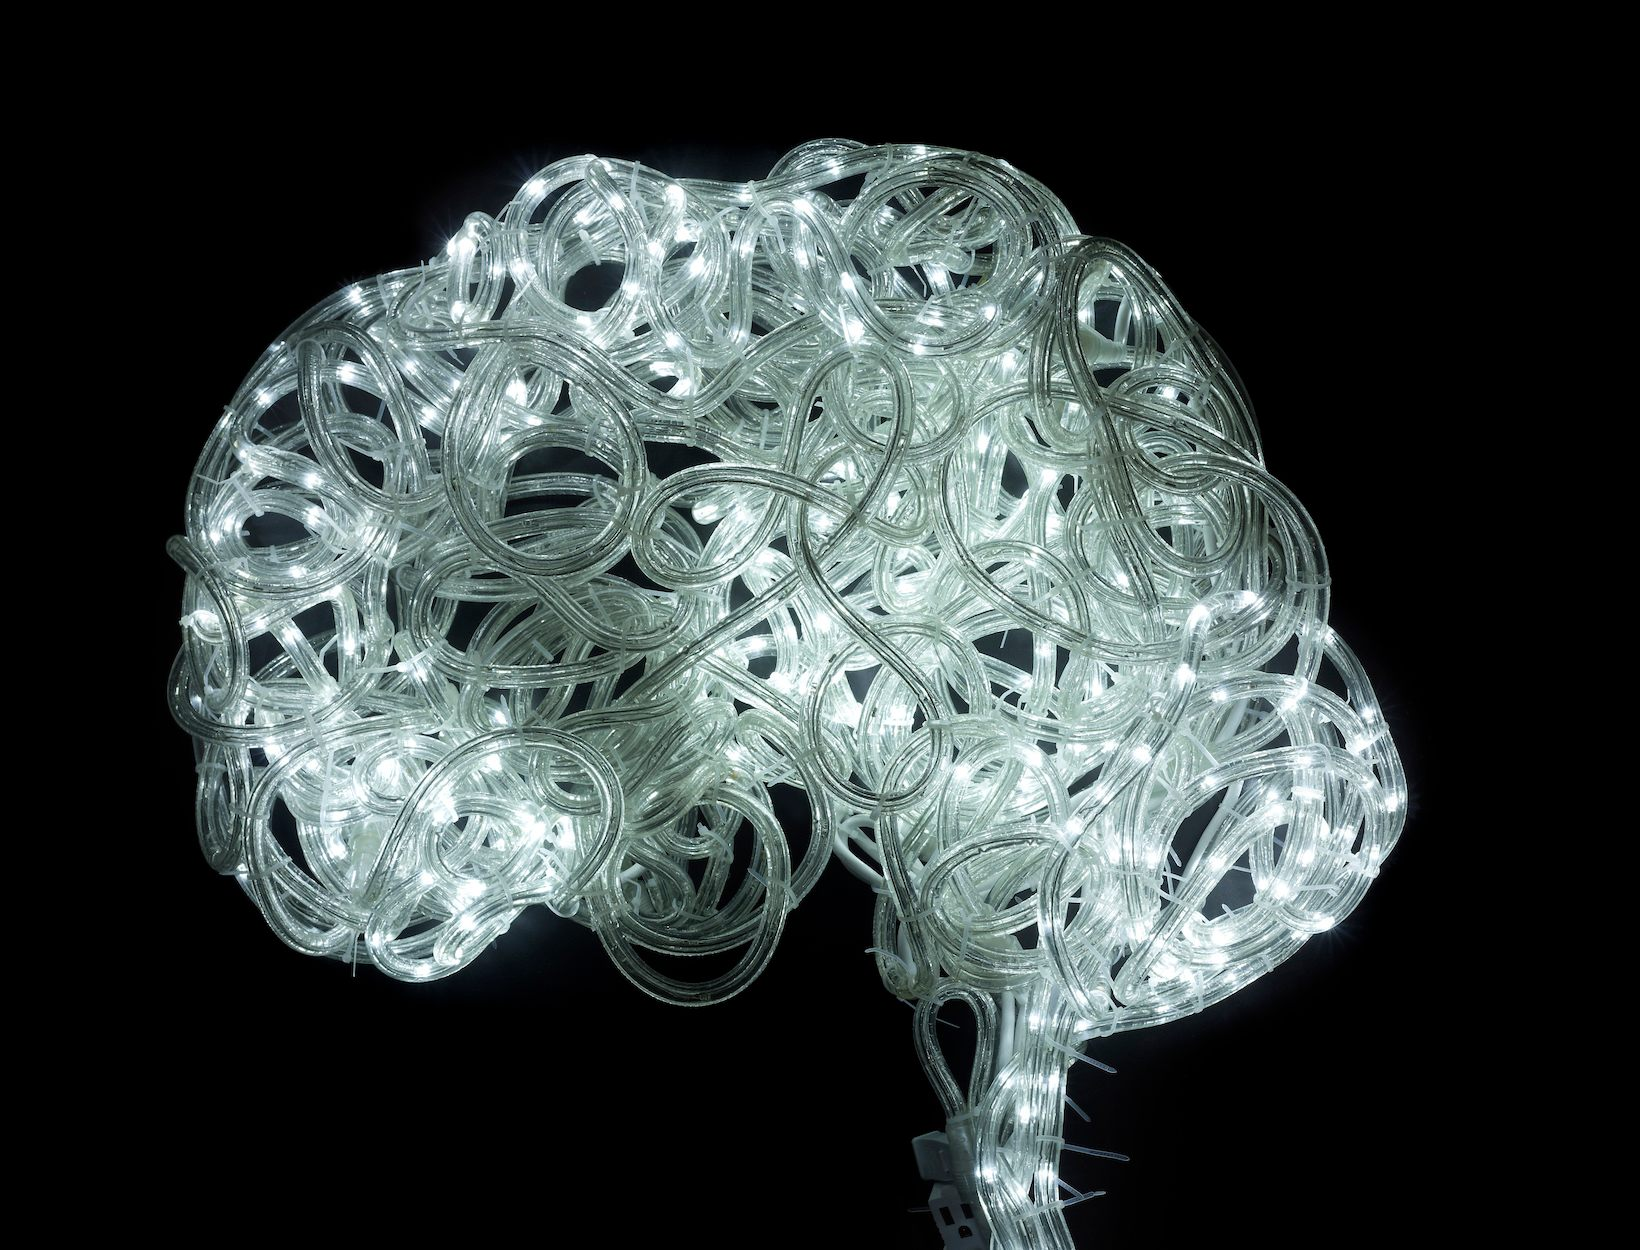 A Research Scientist on What Happens to the Brains of Mediums When They Talk to the Other Side